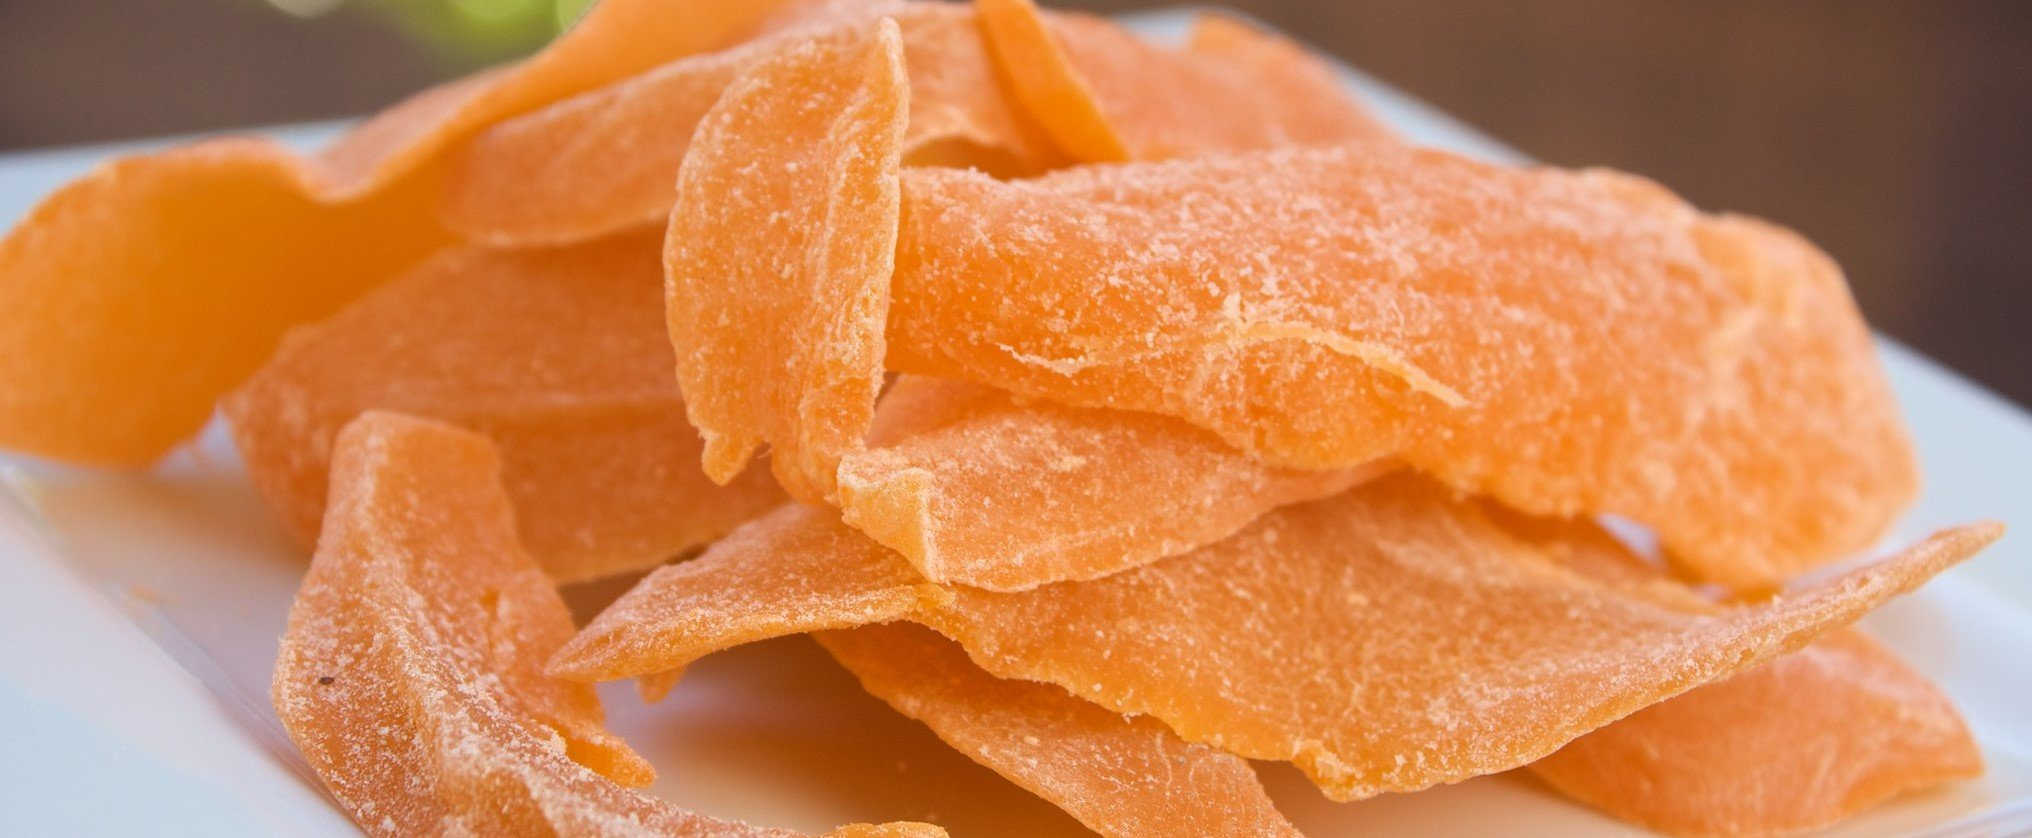 While fruit is healthy, how about dried fruit? Eh, not really.